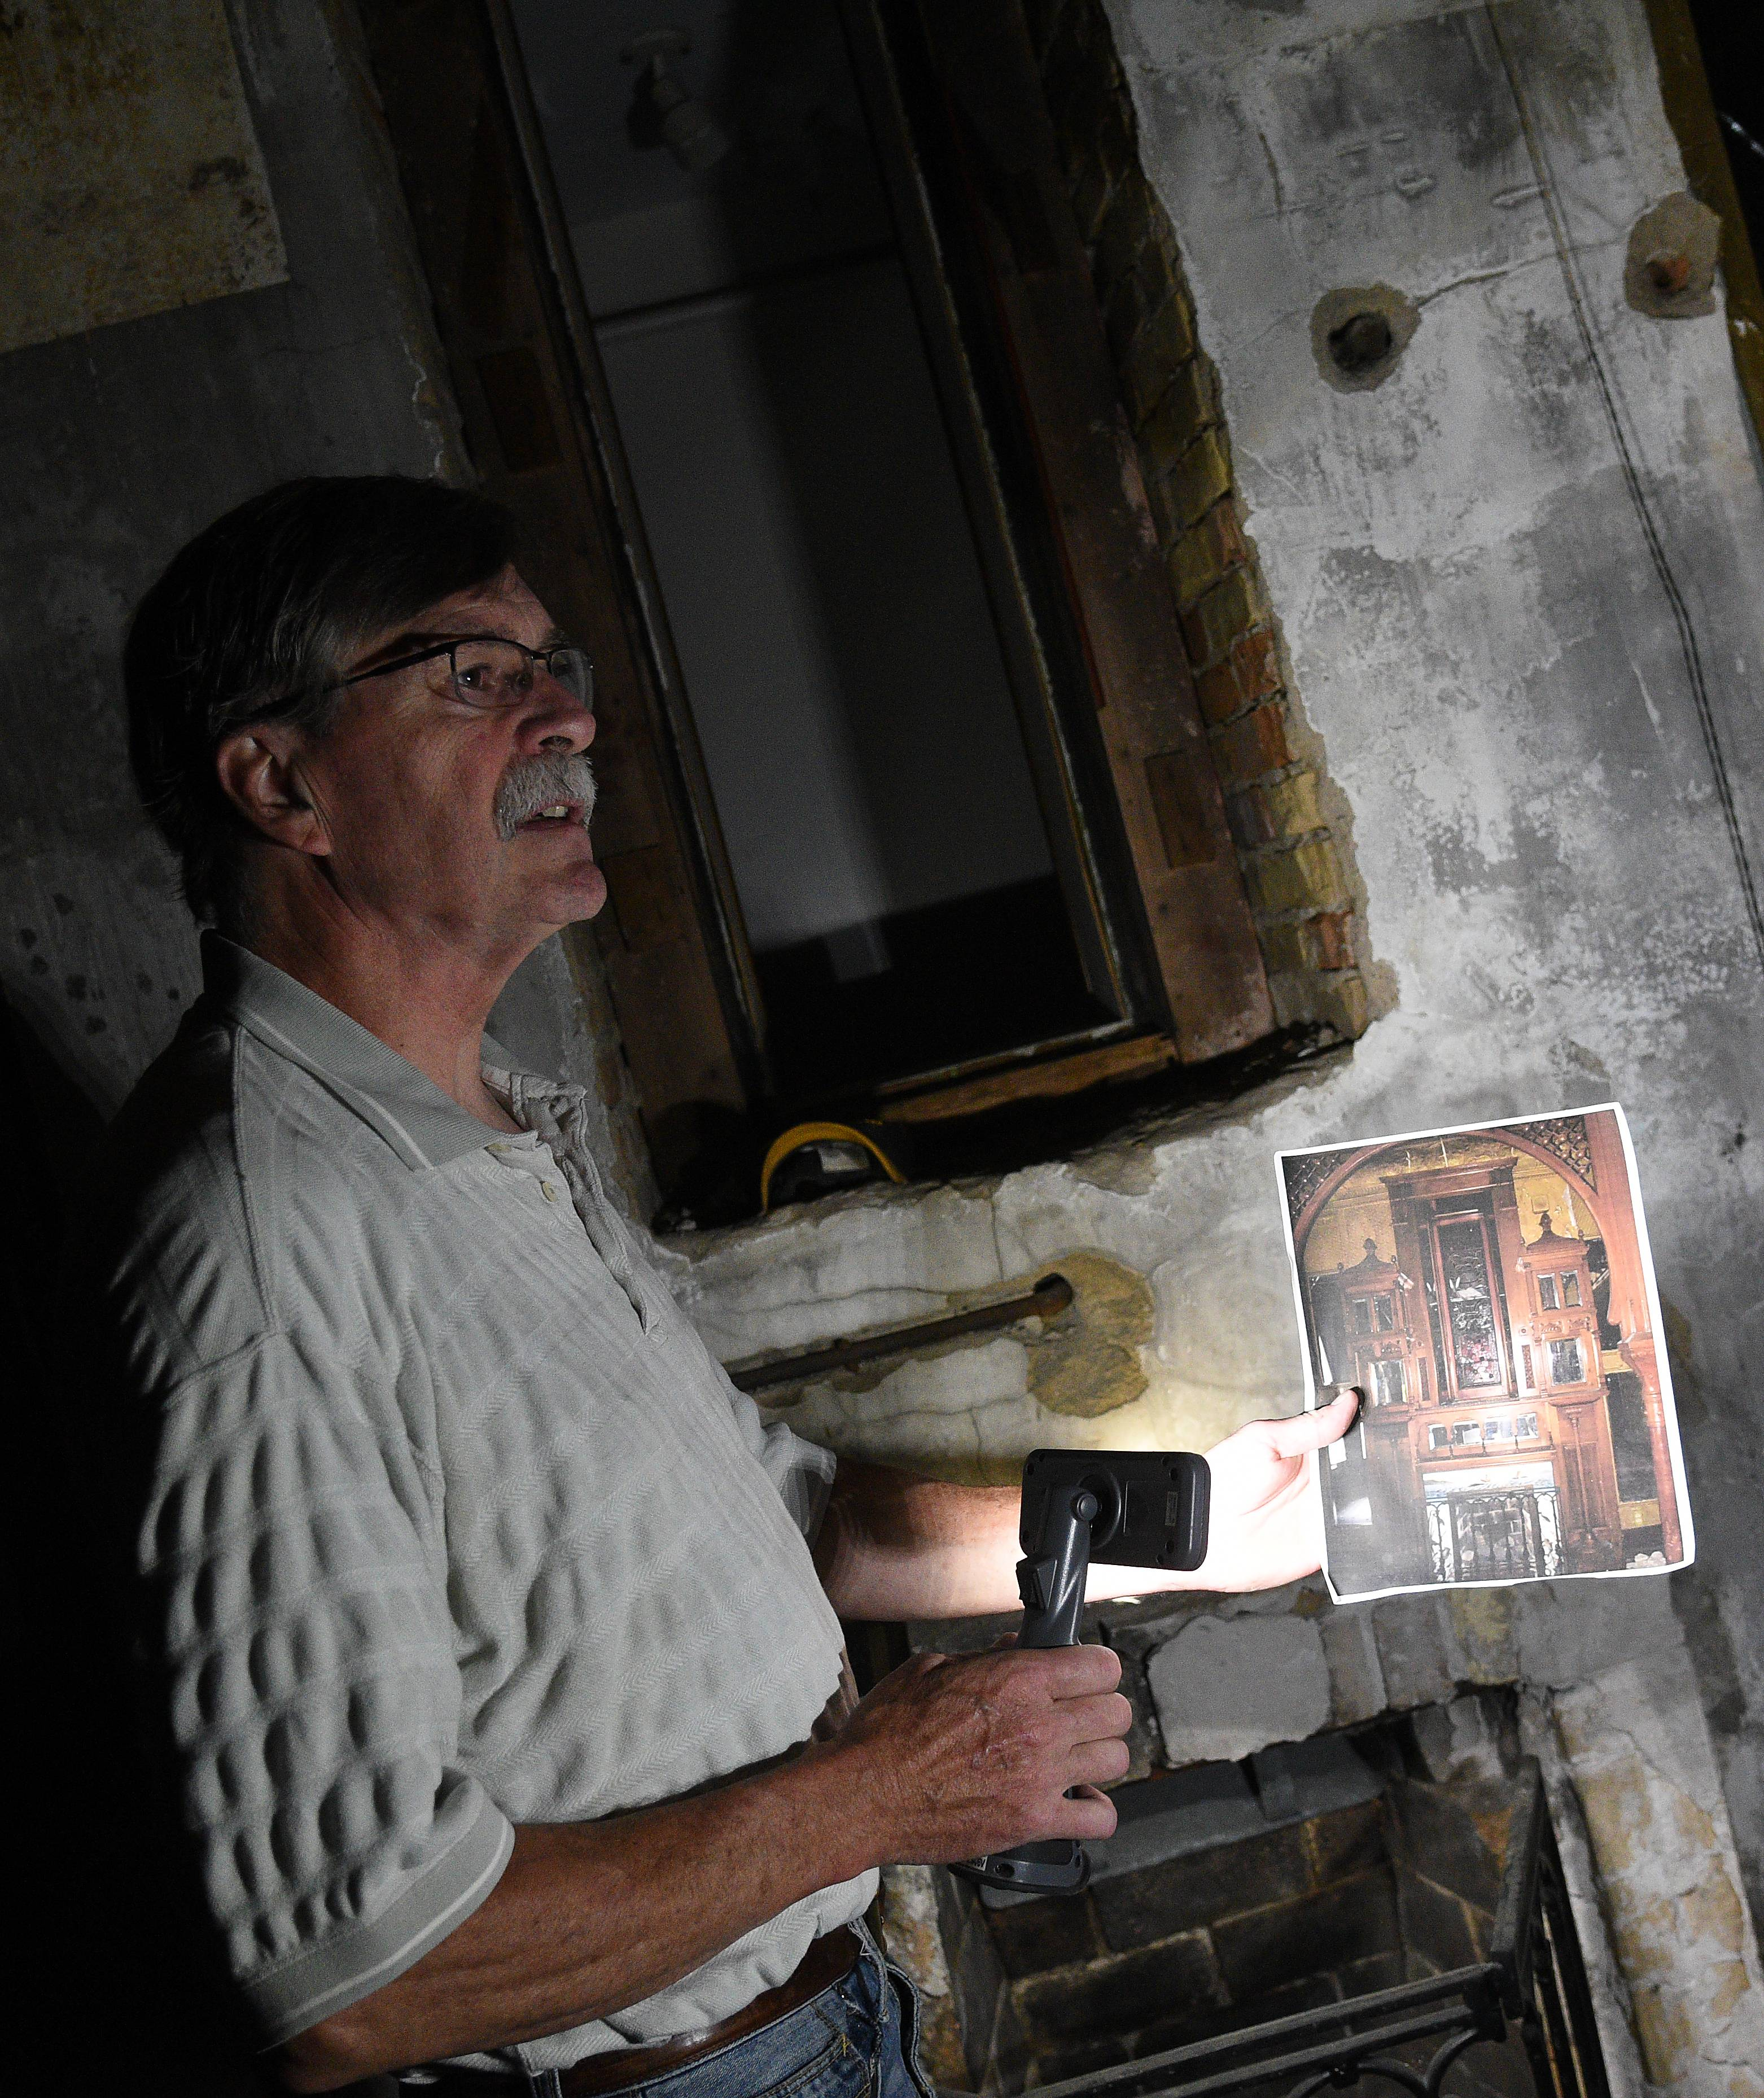 Dan Miller shows a photo of an ornate mantle that was removed by a salvage company at the historic David C. Cook mansion in Elgin.